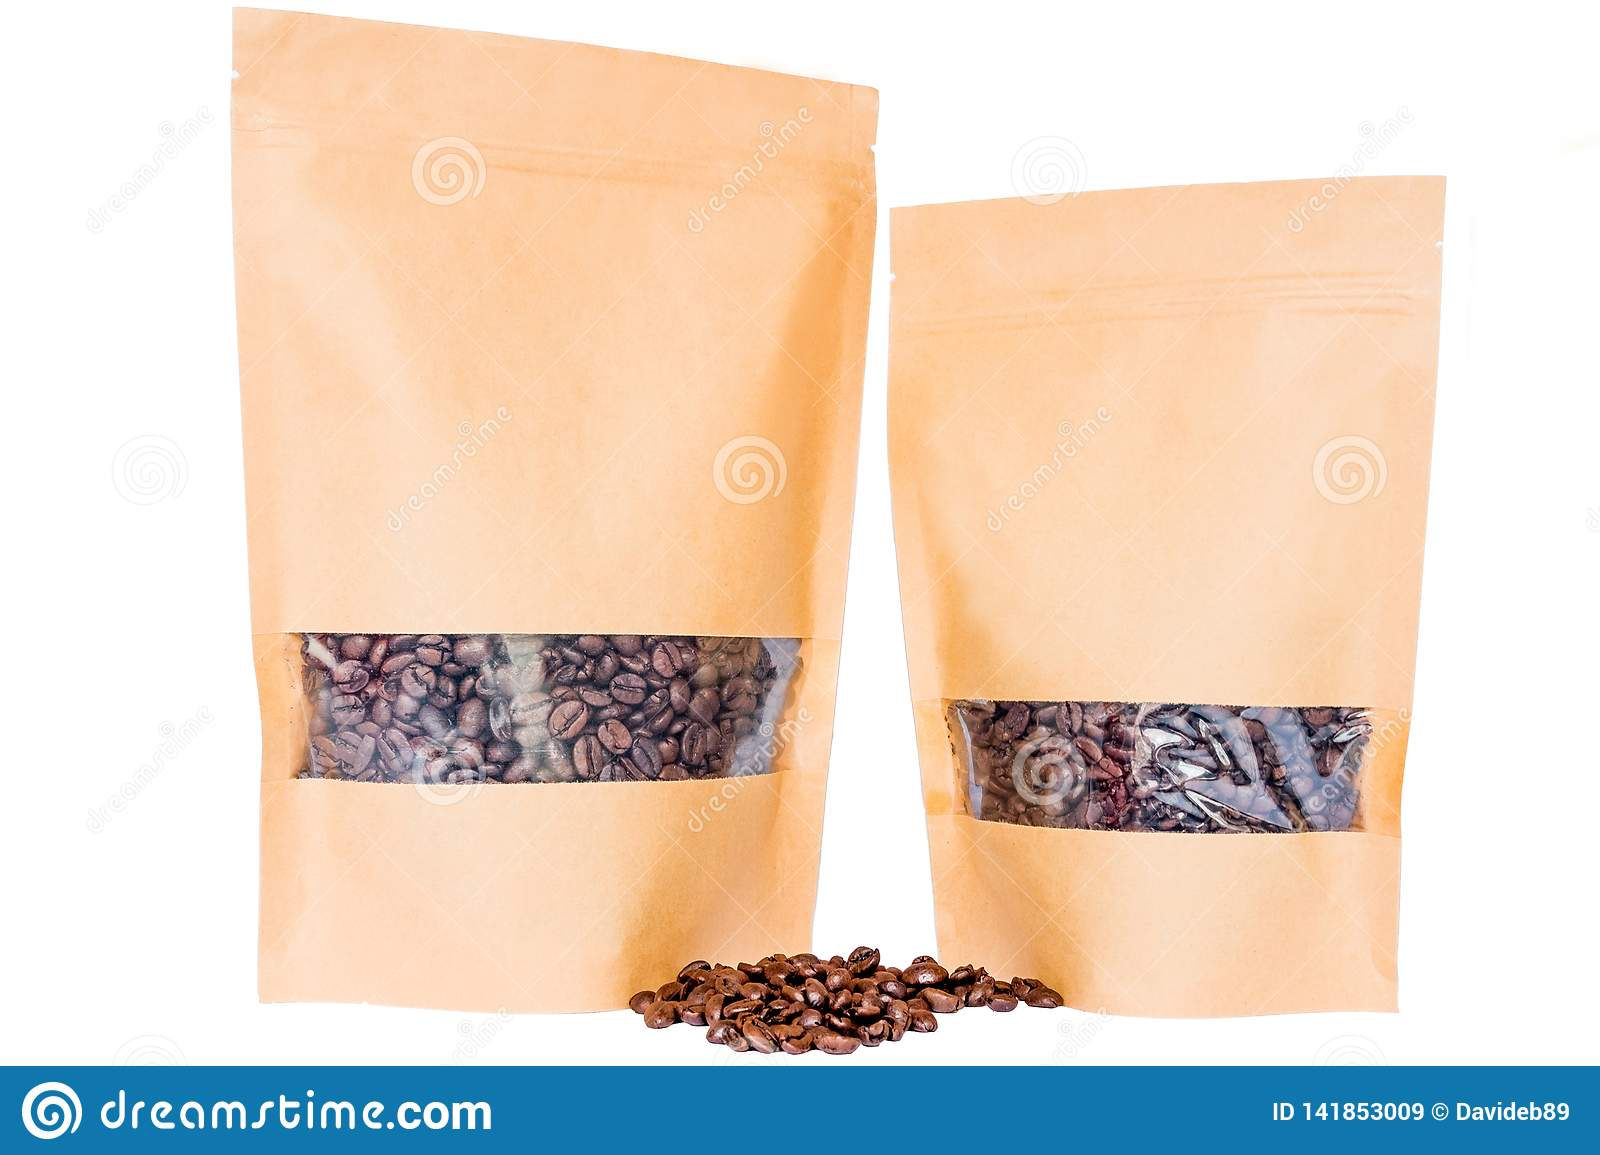 Side view of two kraft paper doypack stand up pouches with window and zipper filled with coffee beans on white background